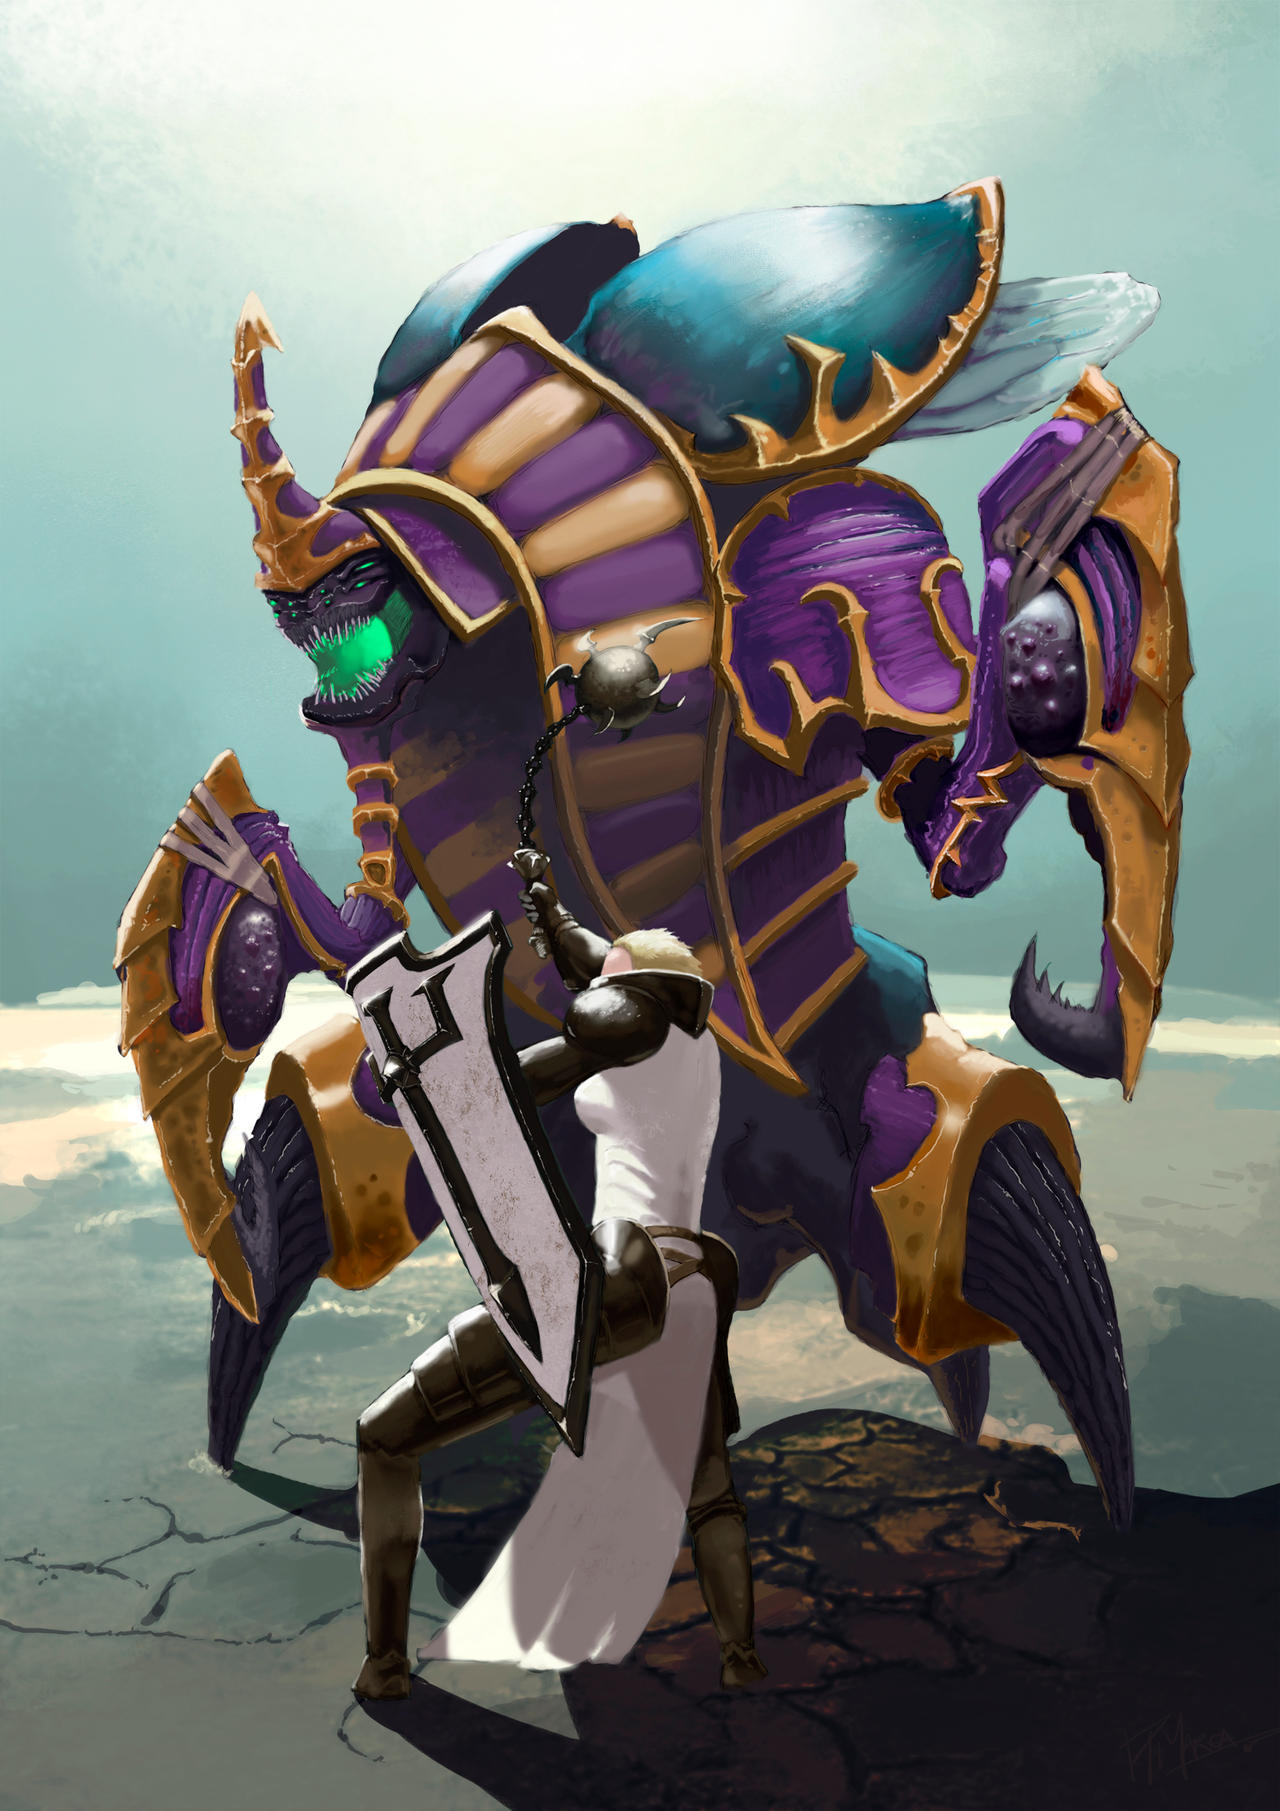 Heroes Of The Storm Johanna Vs Anub Arak By Fueradellimite On Deviantart Welcome to our guide for anub'arak, a tank in heroes of the storm. deviantart